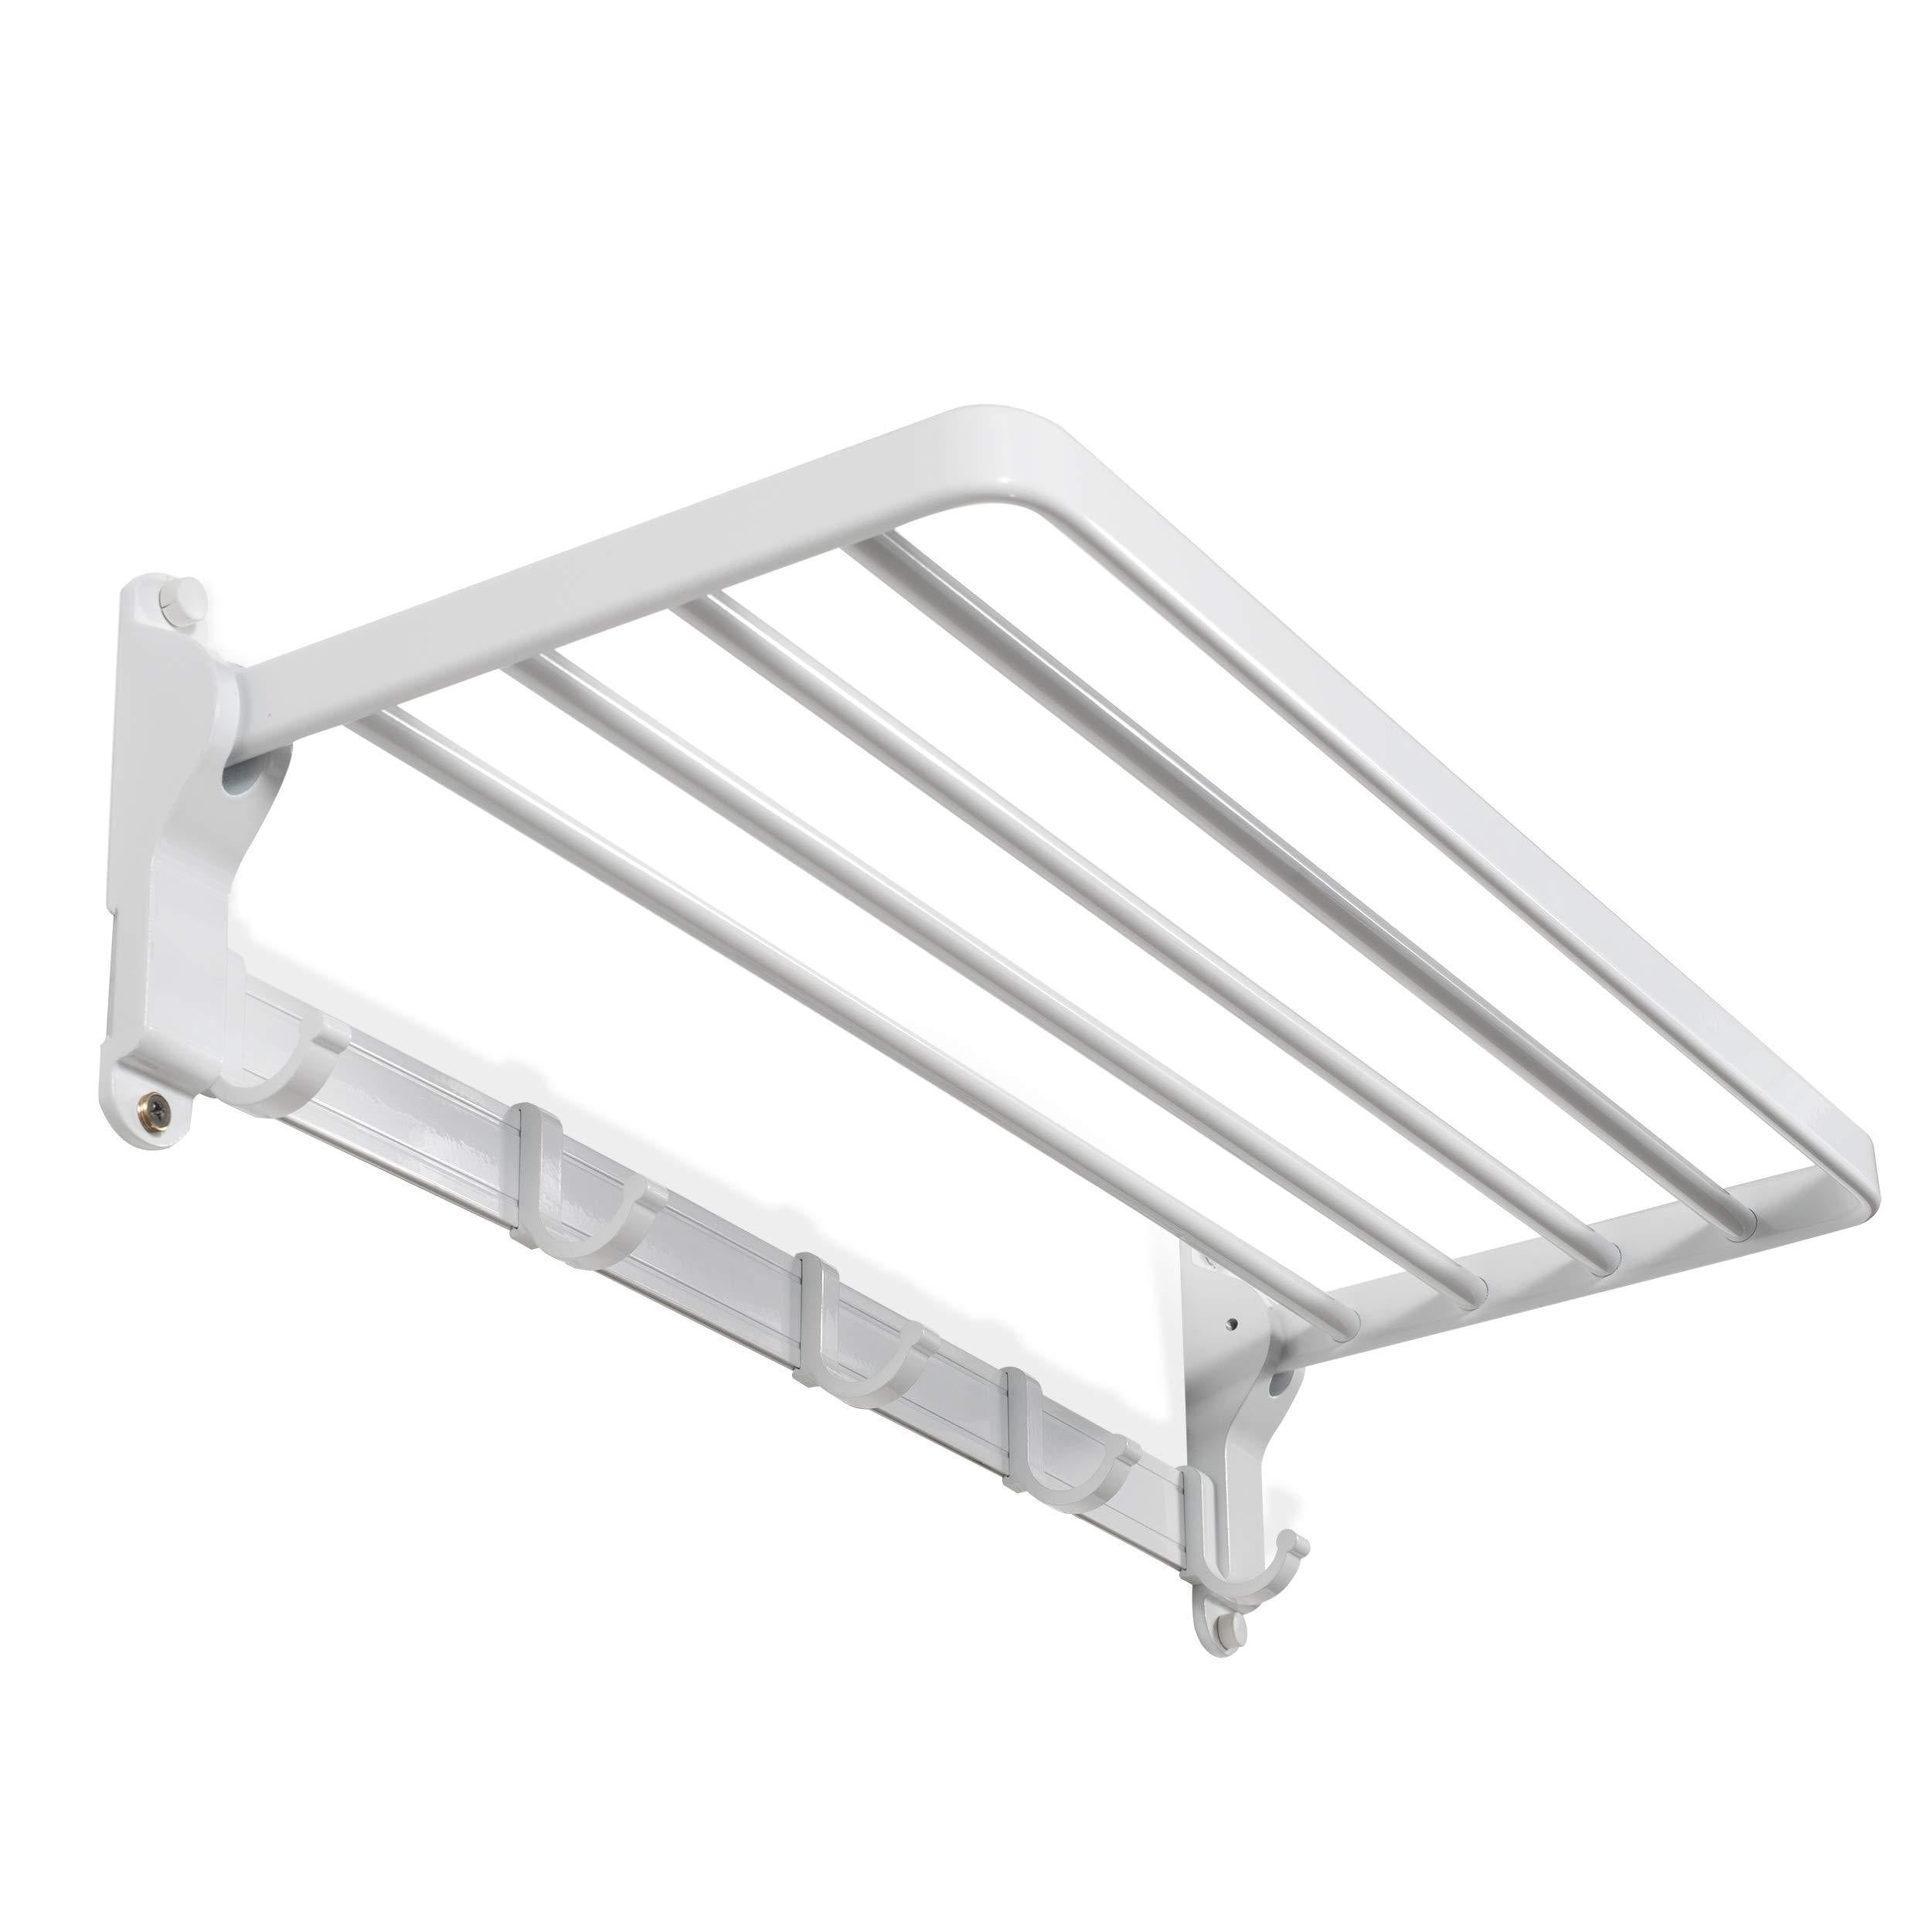 brightmaison Clothes Drying Rack Wall Mounted Folding Adjustable Collapsible (White)